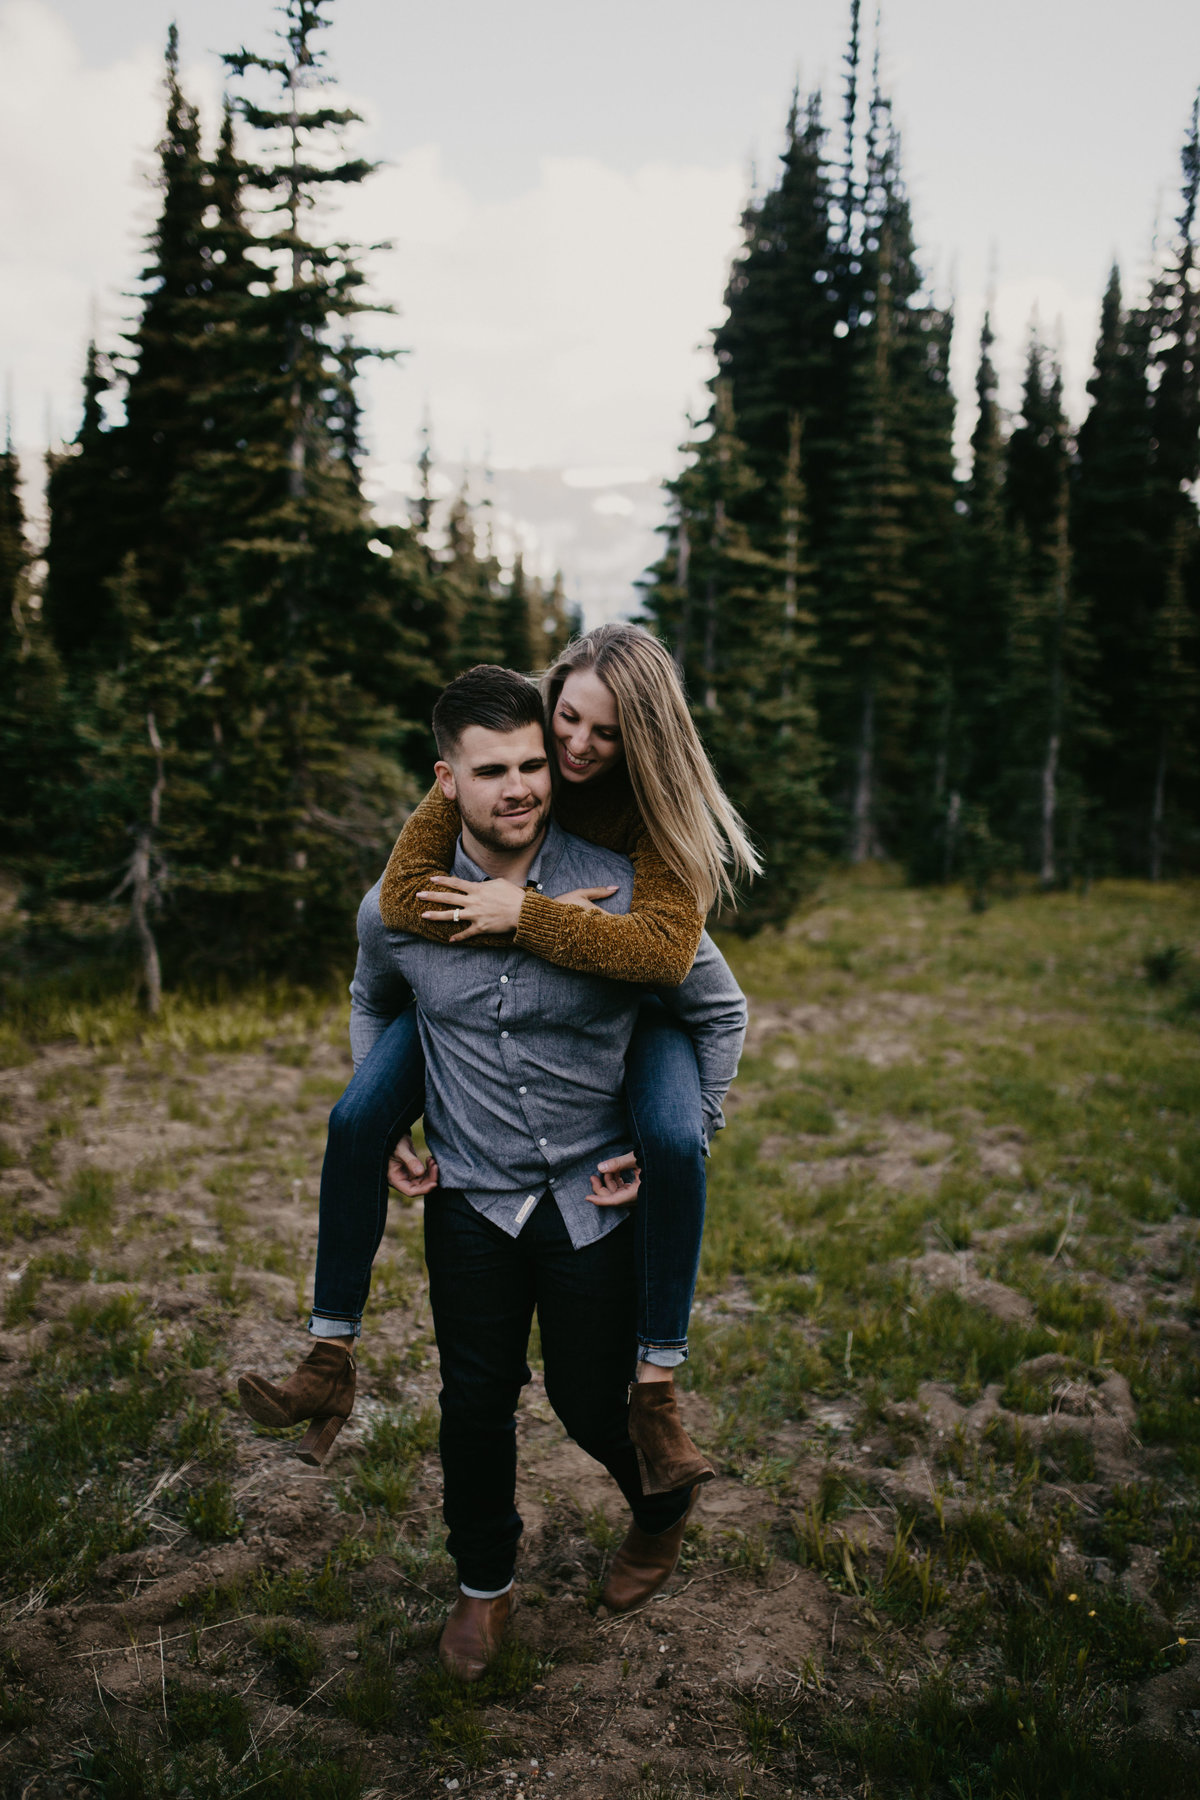 Marnie_Cornell_Photography_Engagement_Mount_Rainier_RK-131